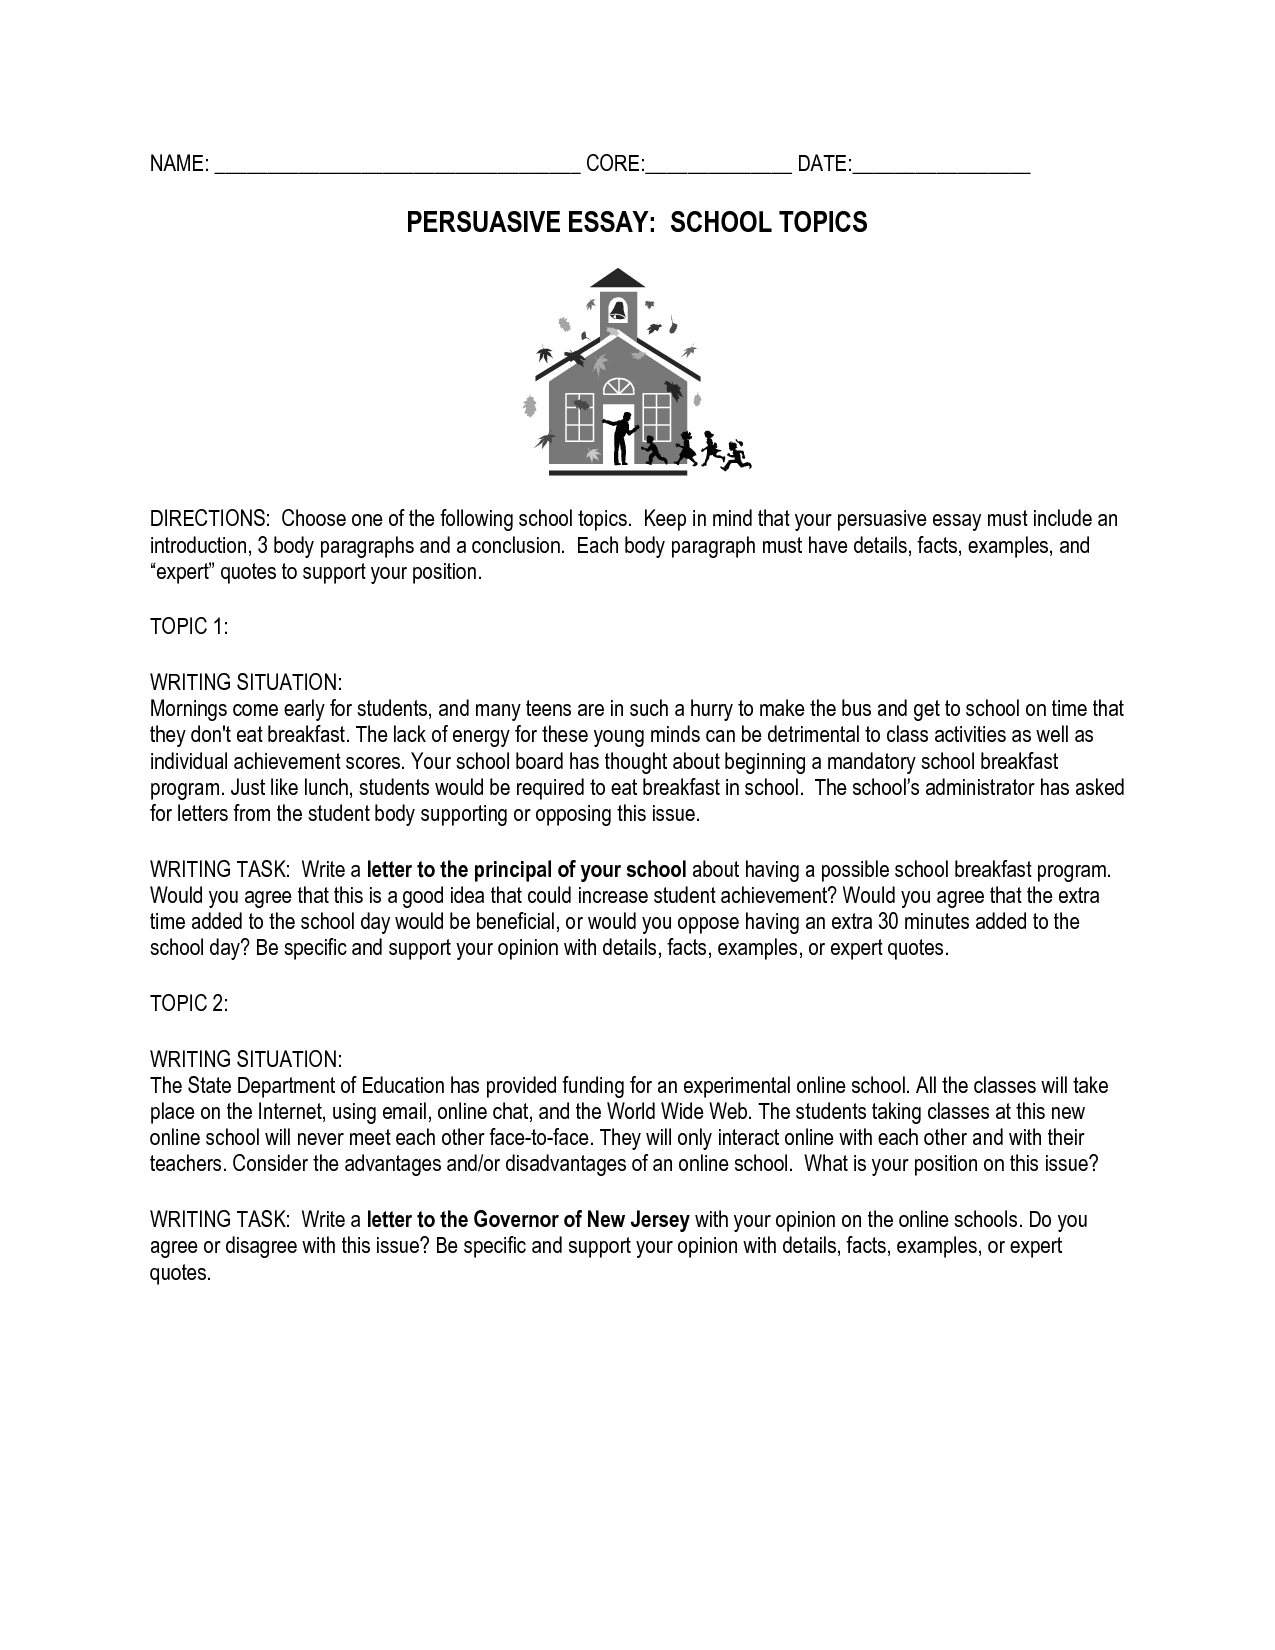 015 Essay Example Writing Conclusion To An Argumentative On School Persuasive Examples Surprising High For Highschool Students Short Full